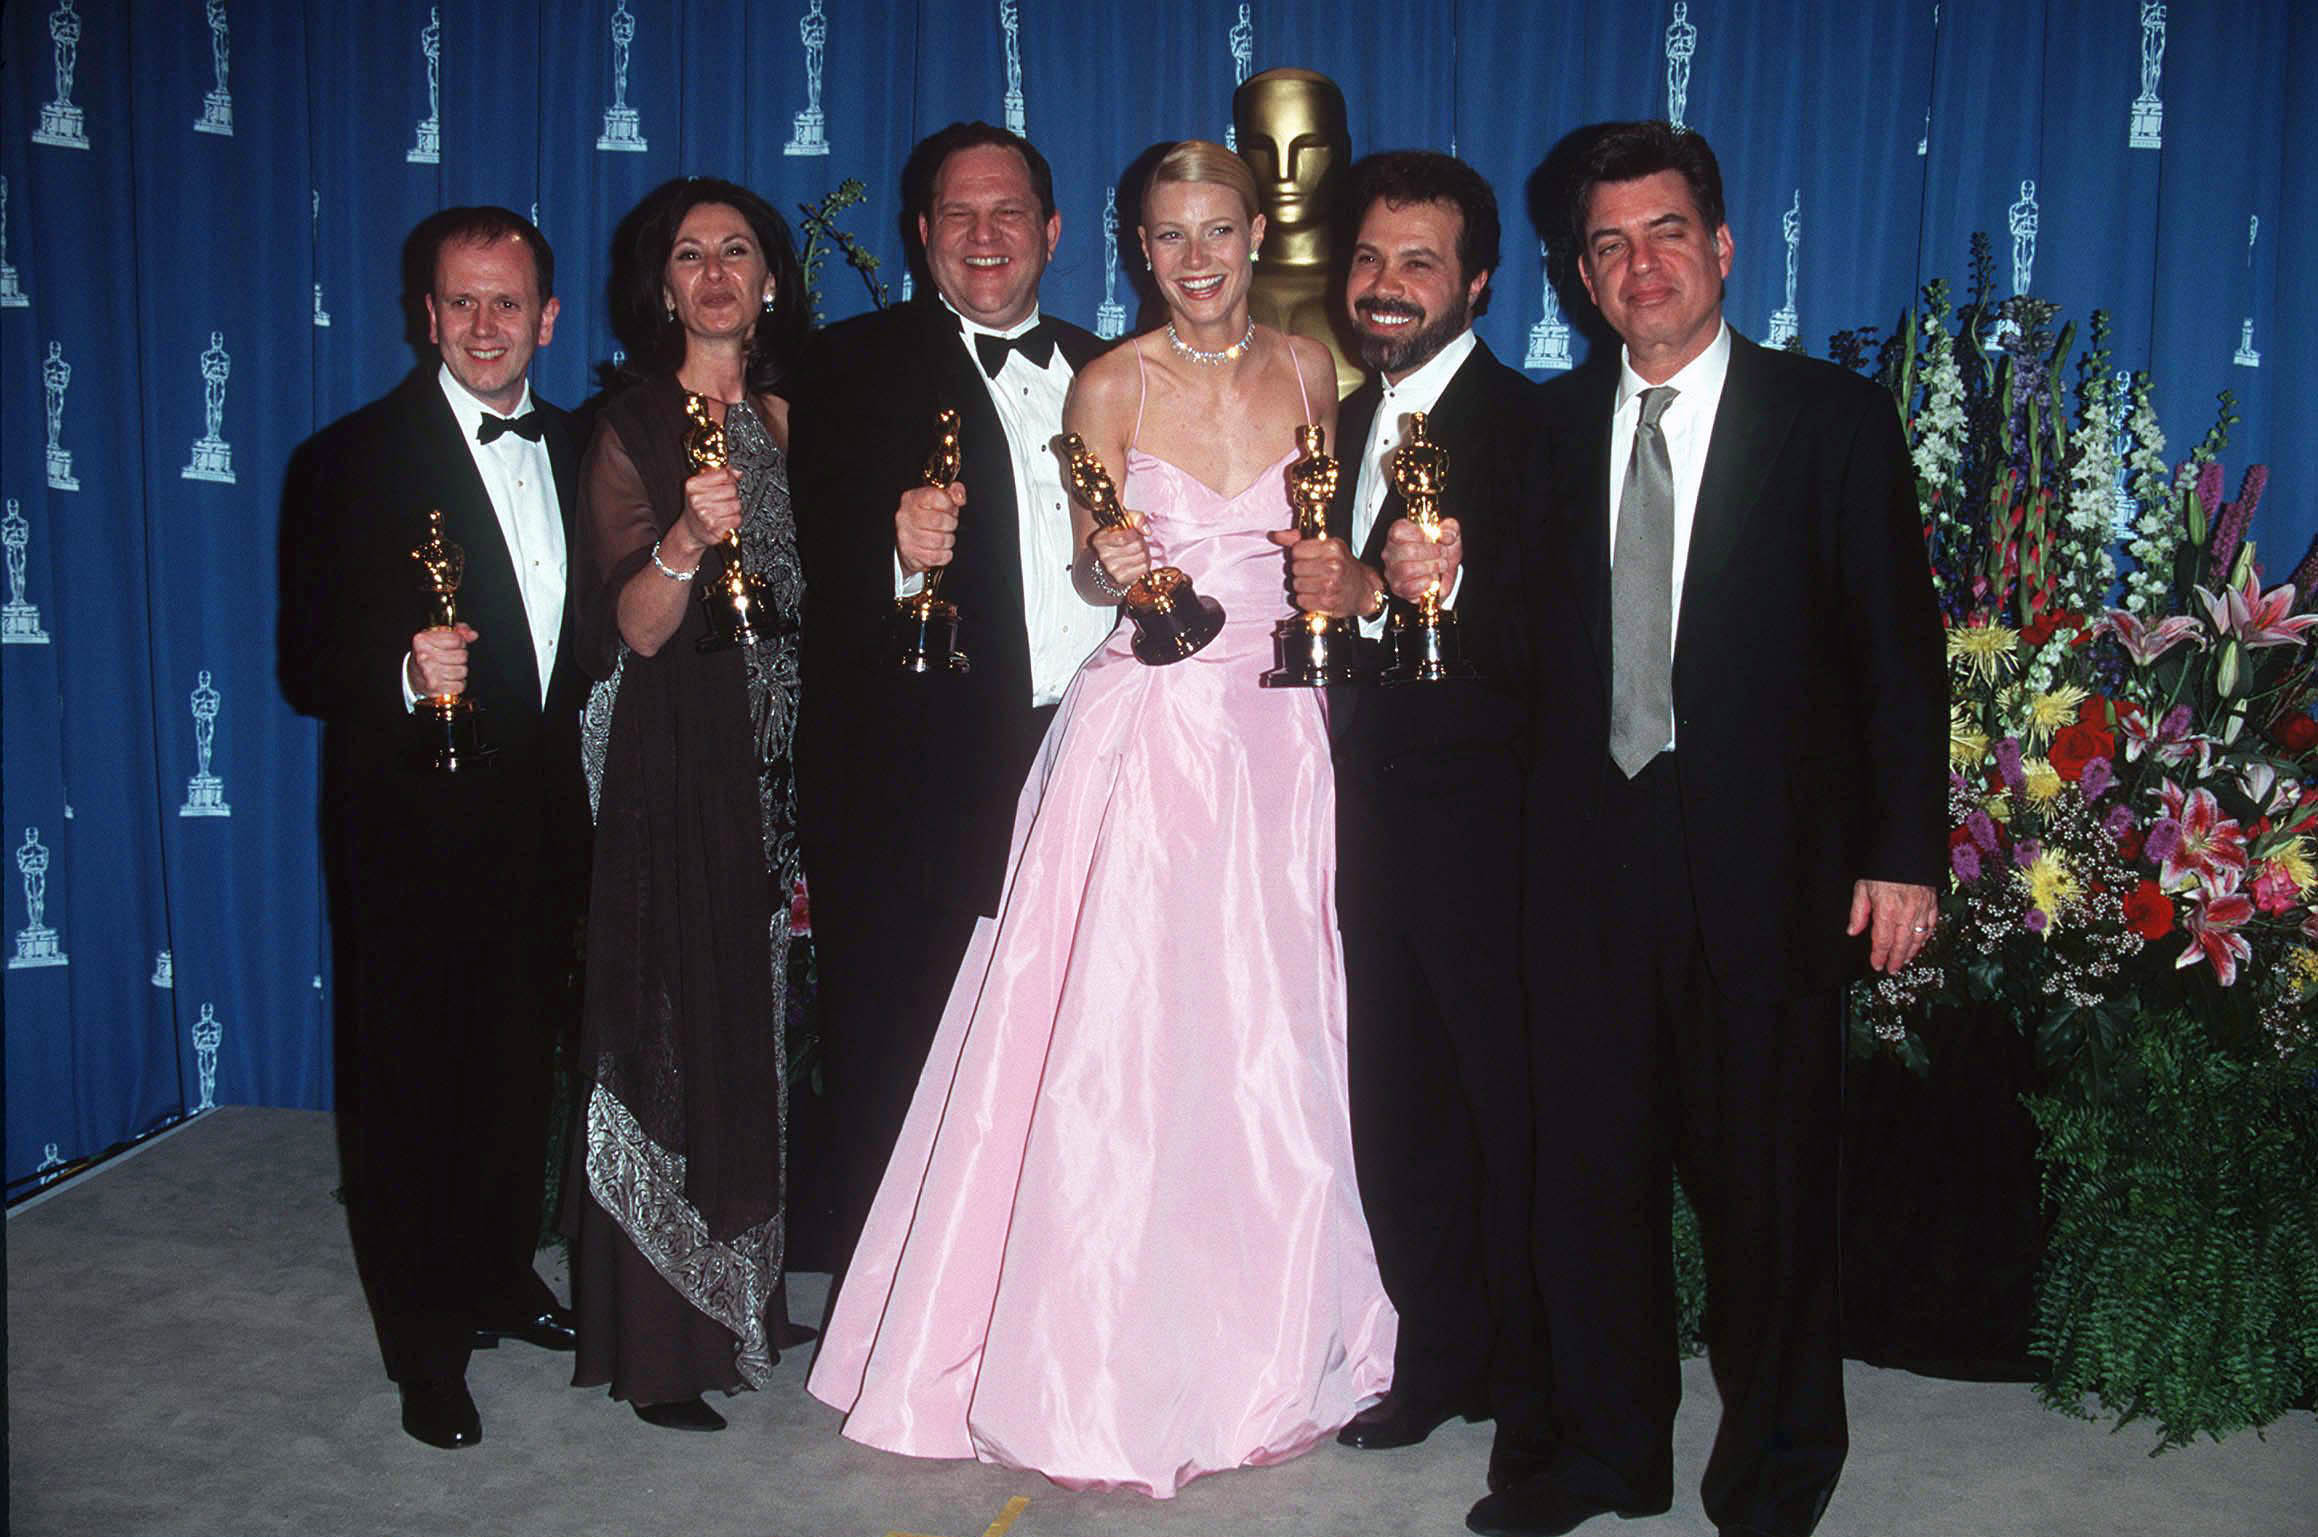 DAVID PARFITT, DONNA GIGLIOTTI, HARVEY WEINSTEIN, GWYNETH PALTROW, EDWARD ZWICK AND MARC NORMAN.OSCAR AWARD CEREMONY, AMERICA - 1999